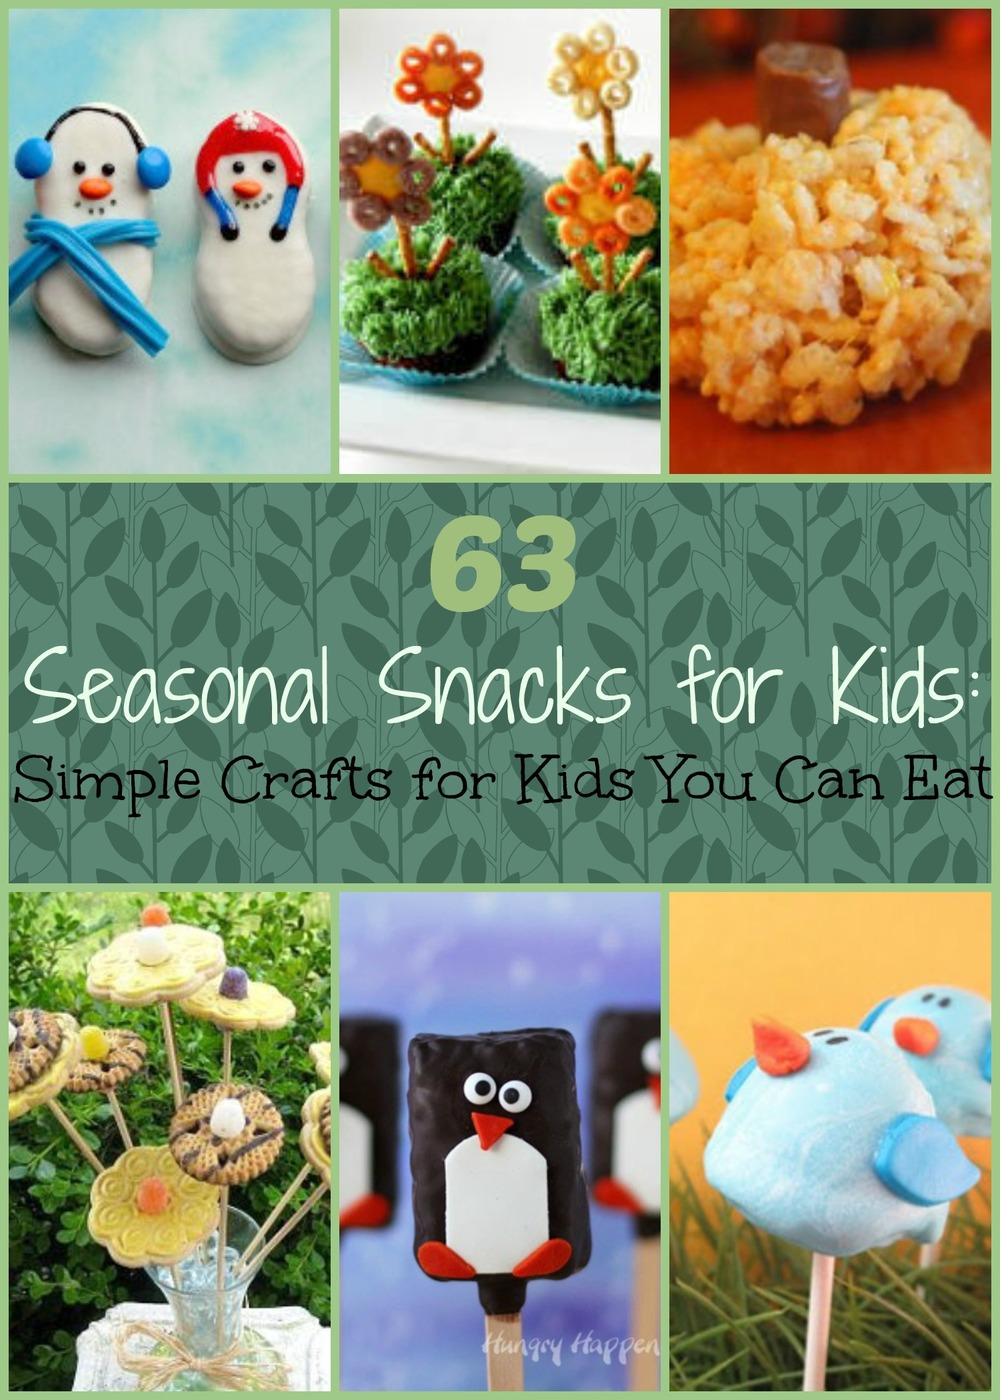 Seasonal Snacks for Kids Simple